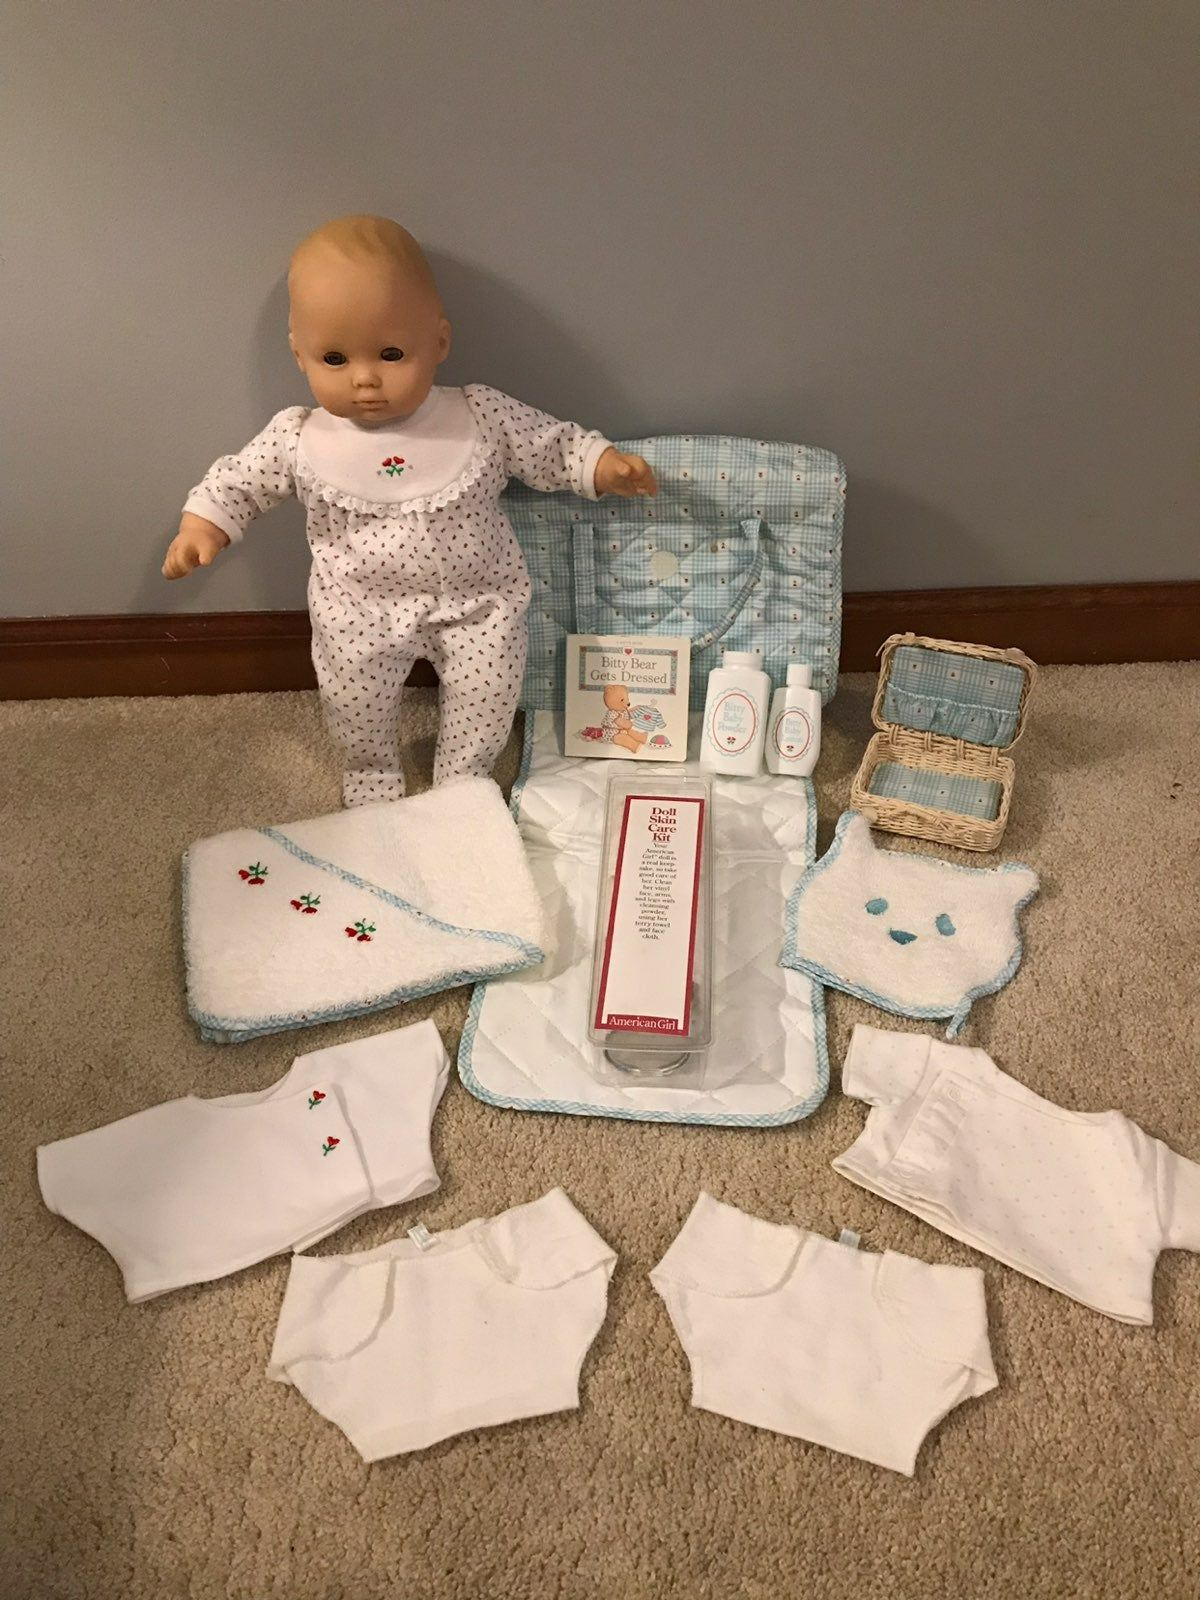 Excellent Condition 1995 Original Bitty Baby With Blonde Lashes By Pleasant Company Doll Is Virtually American Girl Baby Doll Bitty Baby Baby Doll Diaper Bag